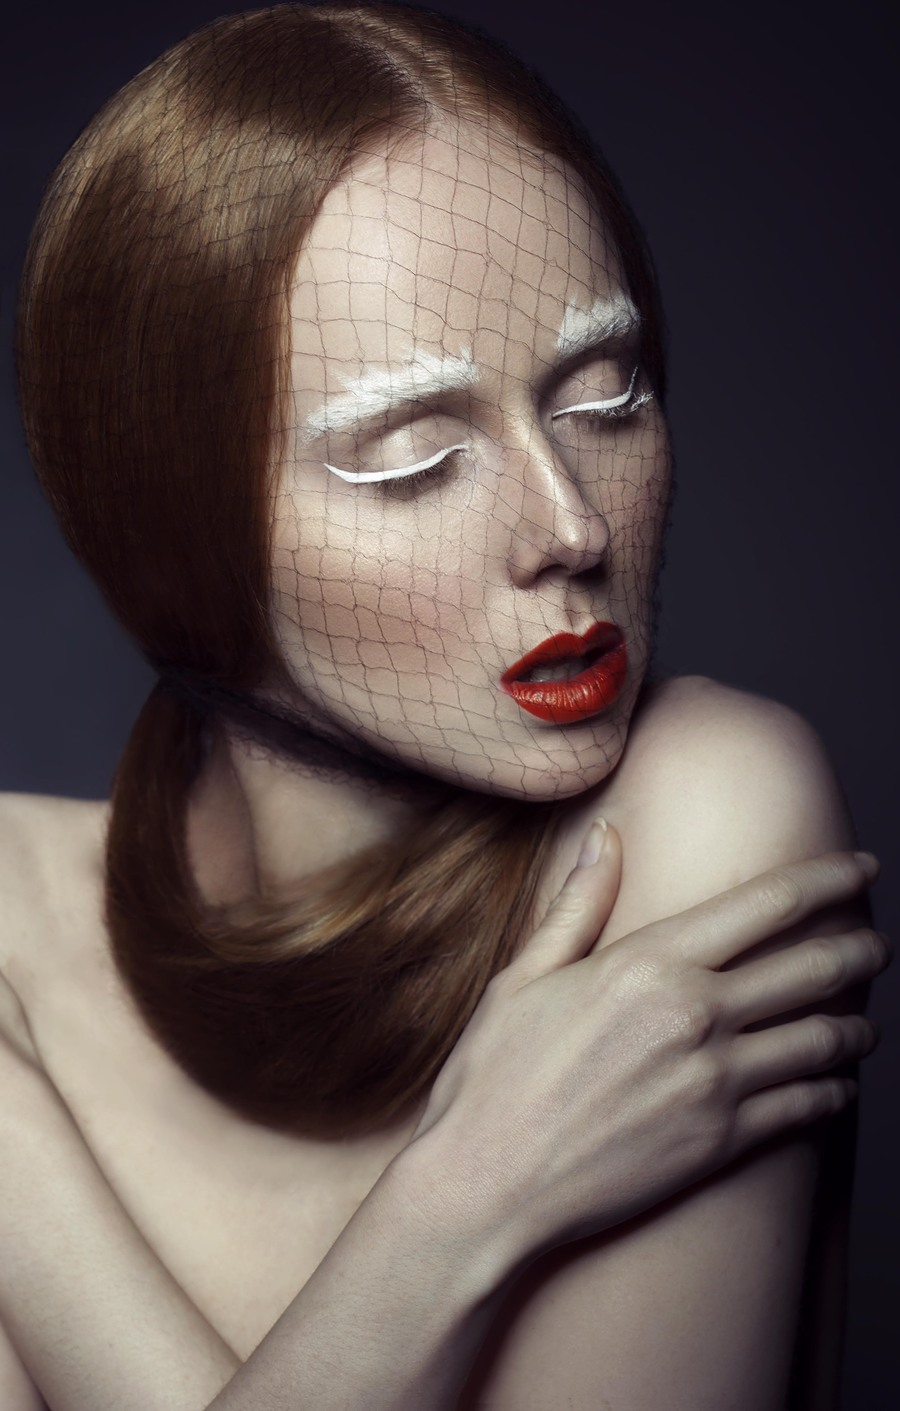 Photography by Iulia David, Model Gem, Makeup by Natalie Wood / Uploaded 17th March 2016 @ 01:25 PM